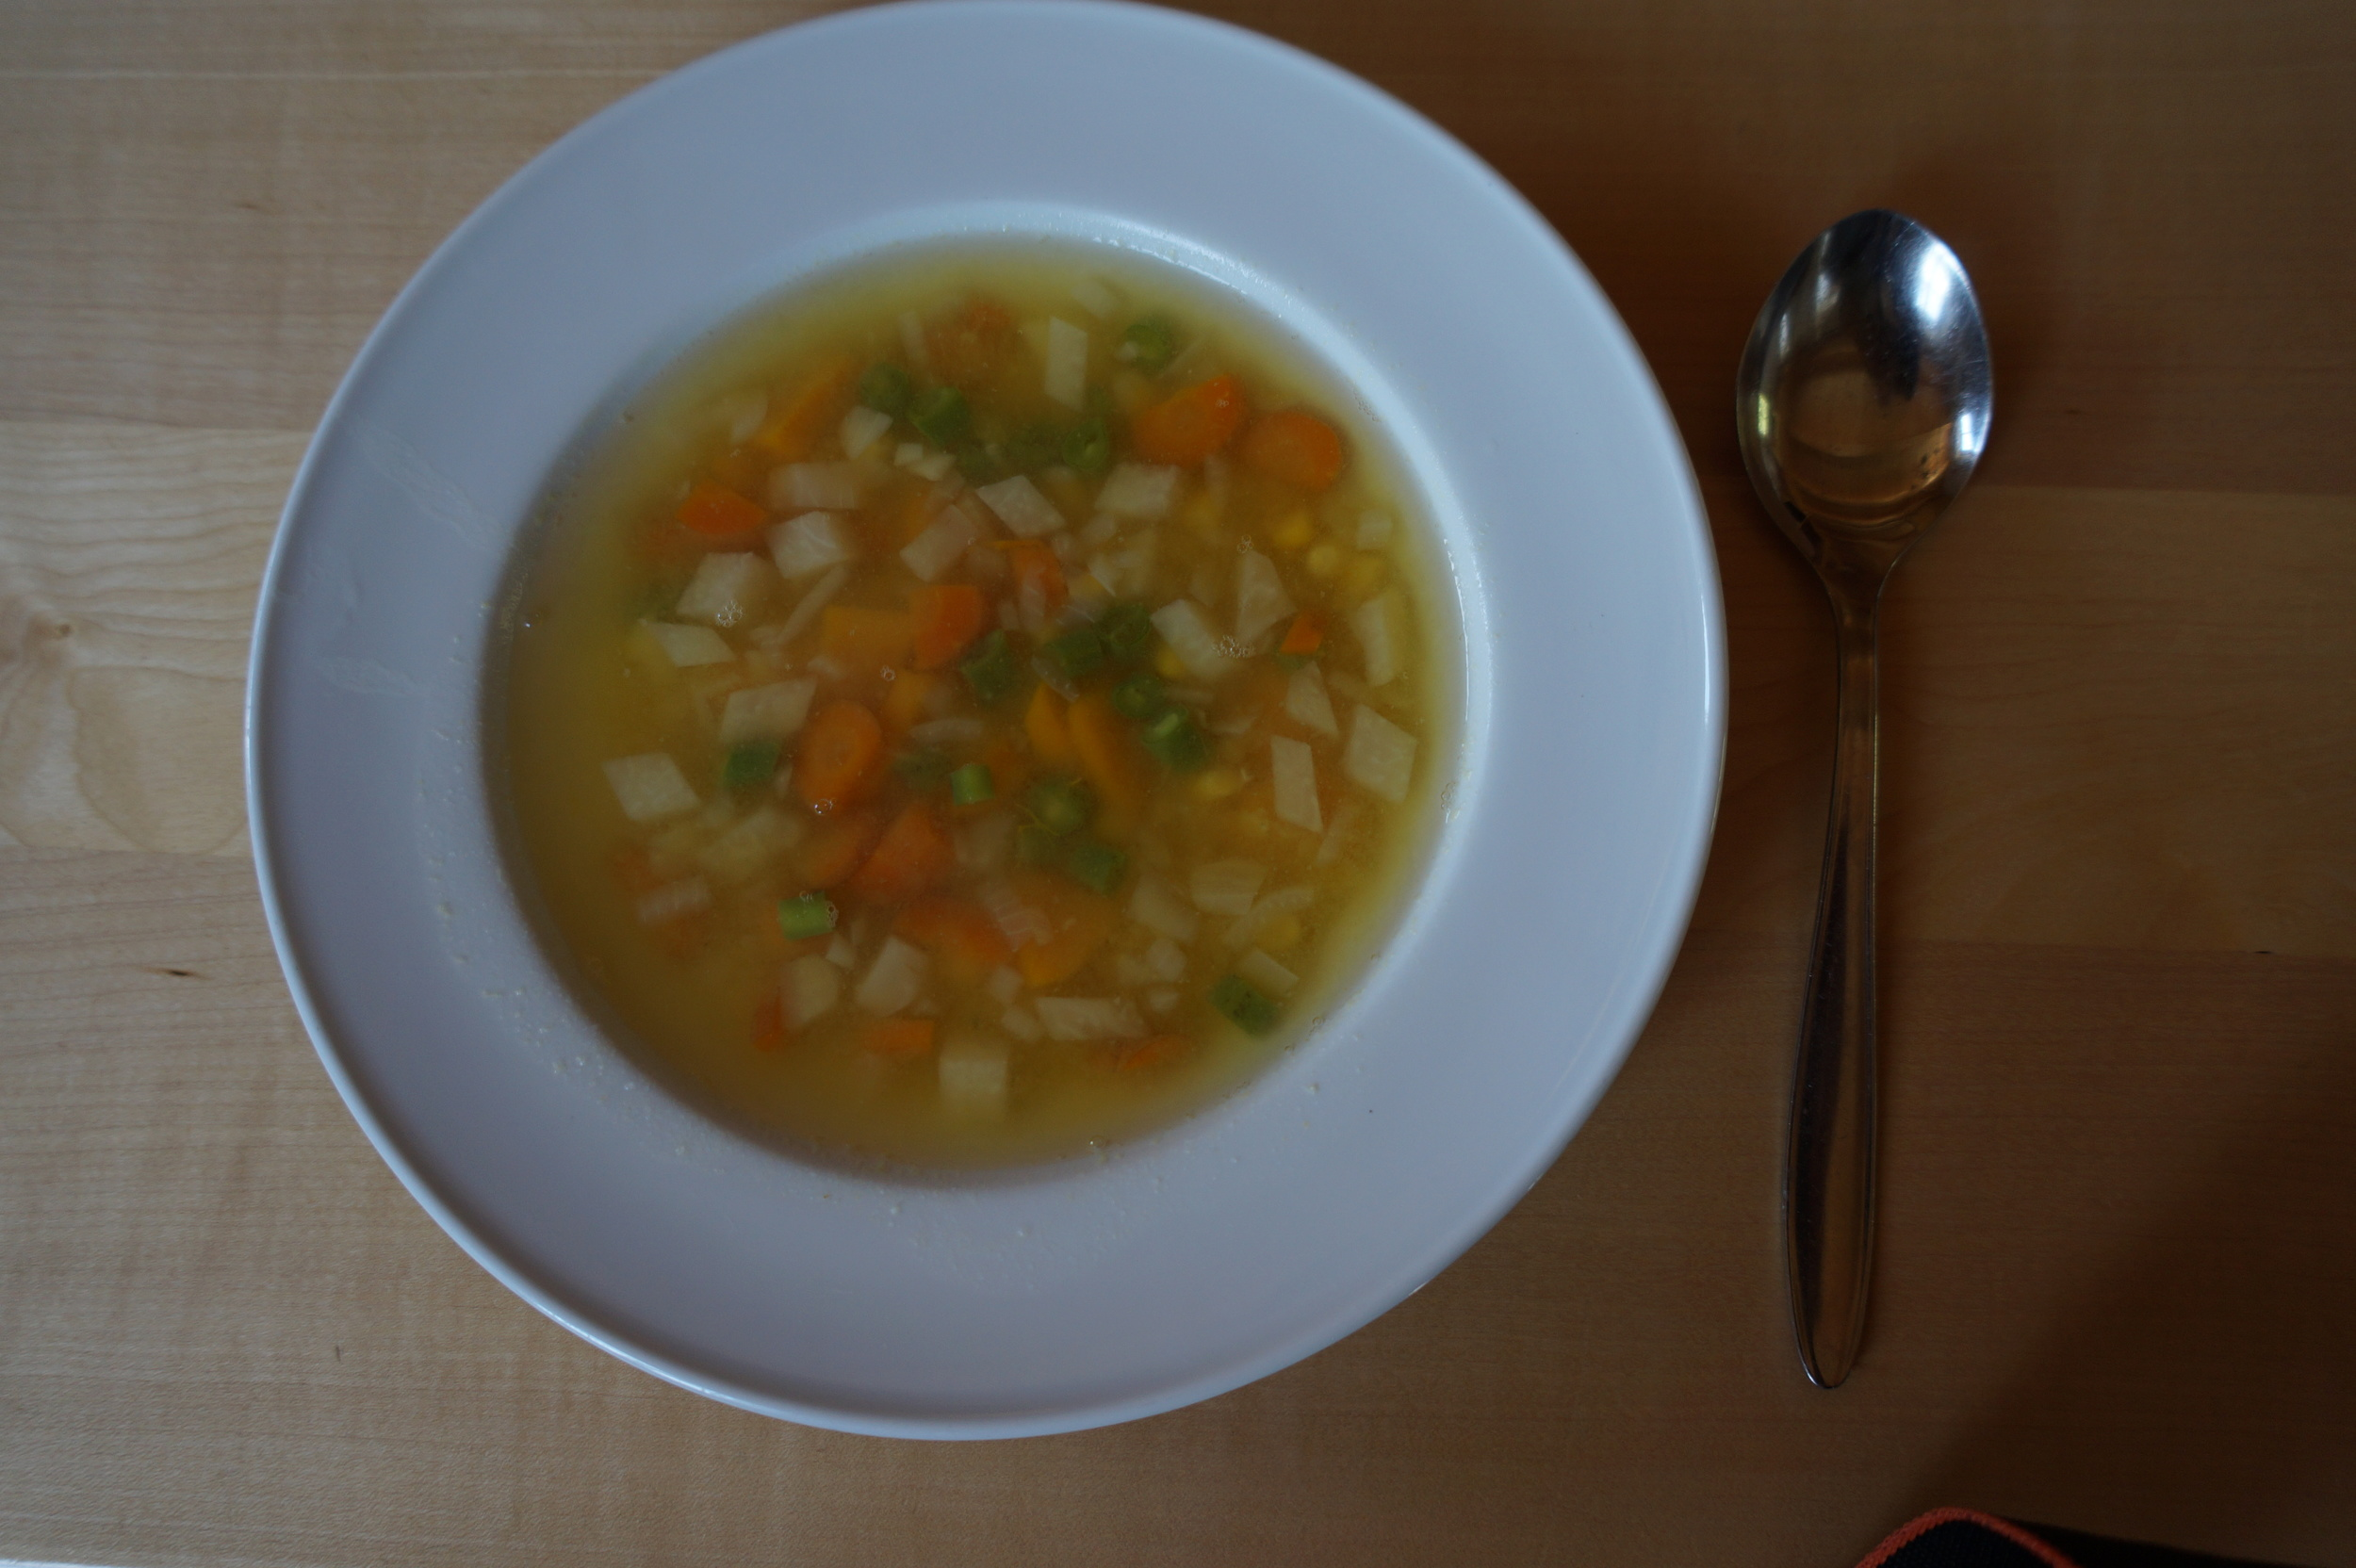 Light vegetable soup for lunch with a touch of red lentils.